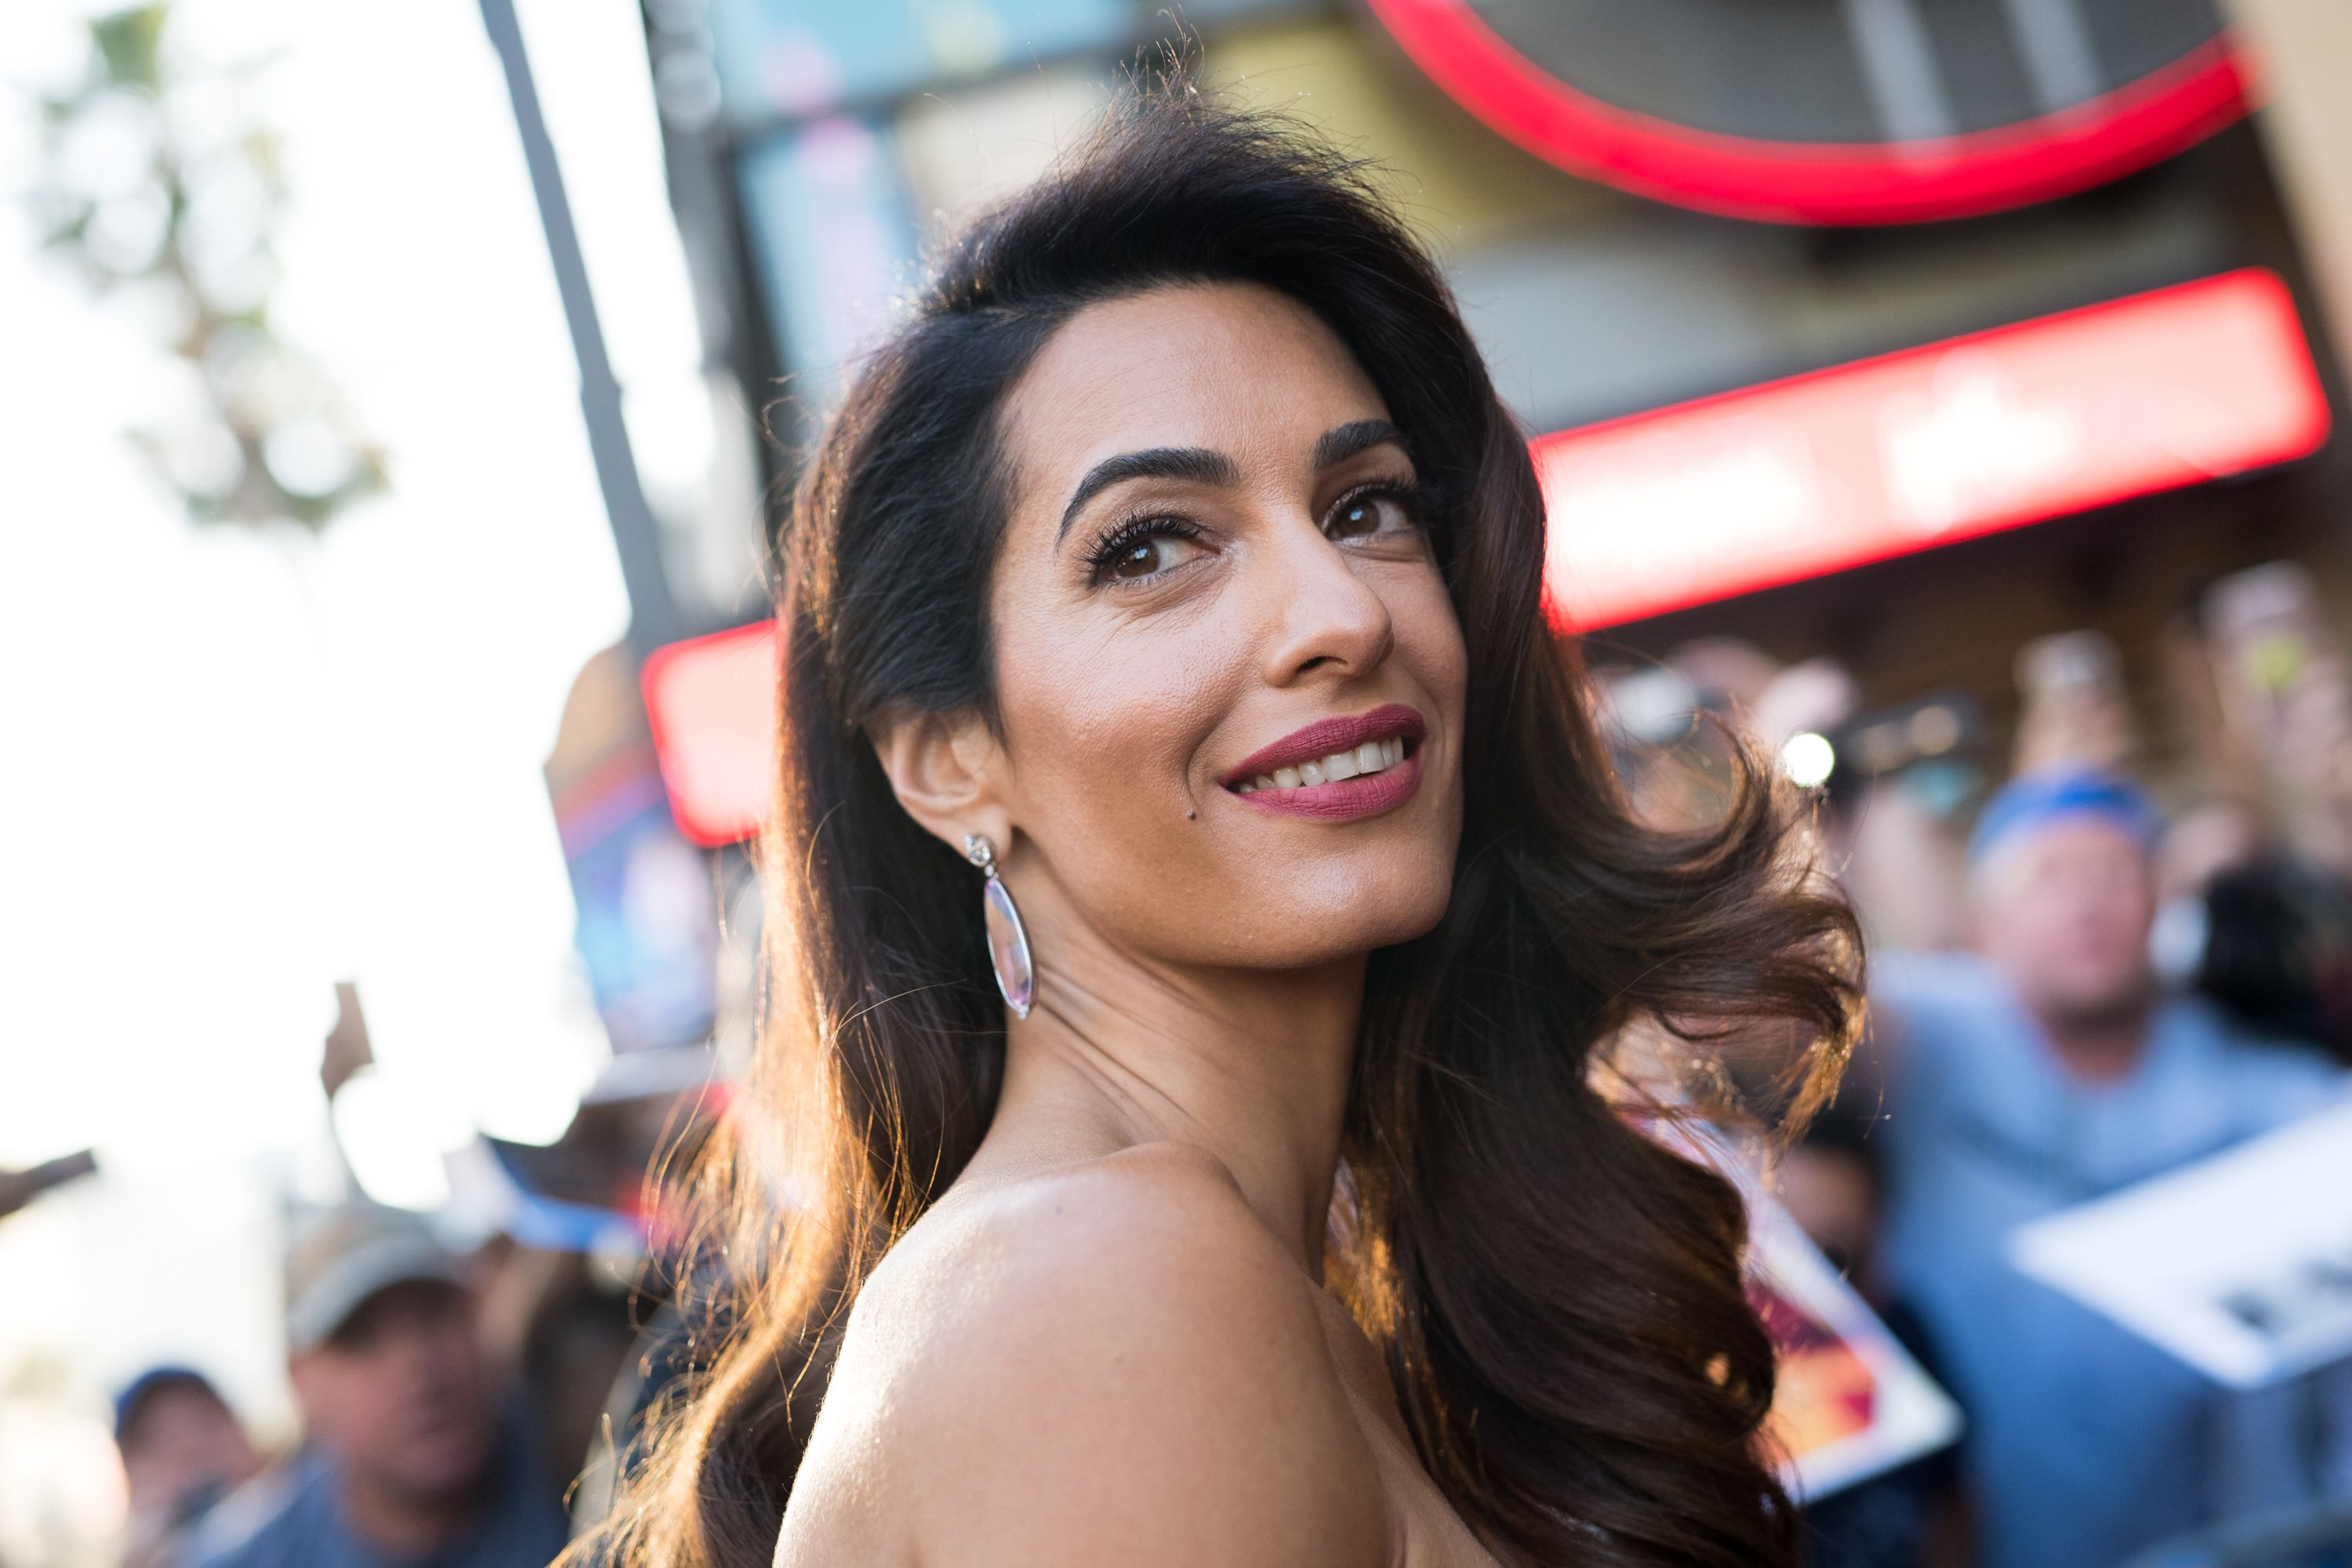 Amal Clooney's Super-Impressive Law Career: A Timeline of The Human Rights Barrister's Legal Cases